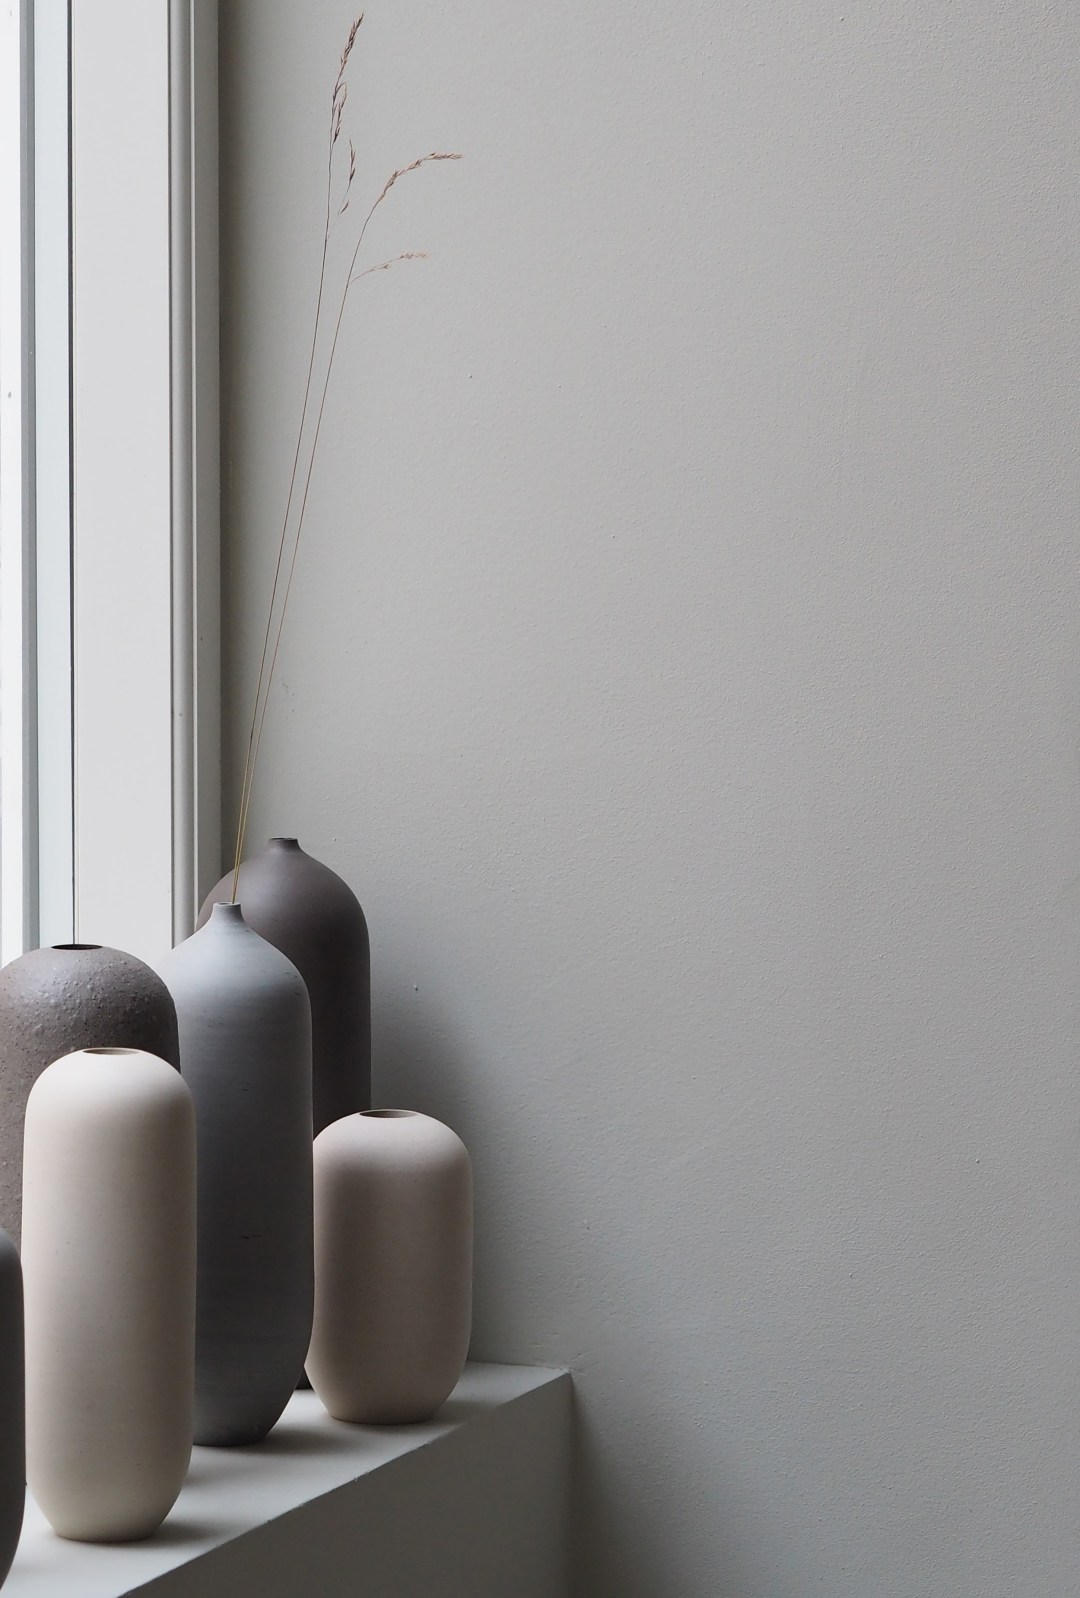 simple grey vases Yōnobi studios Copenhagen